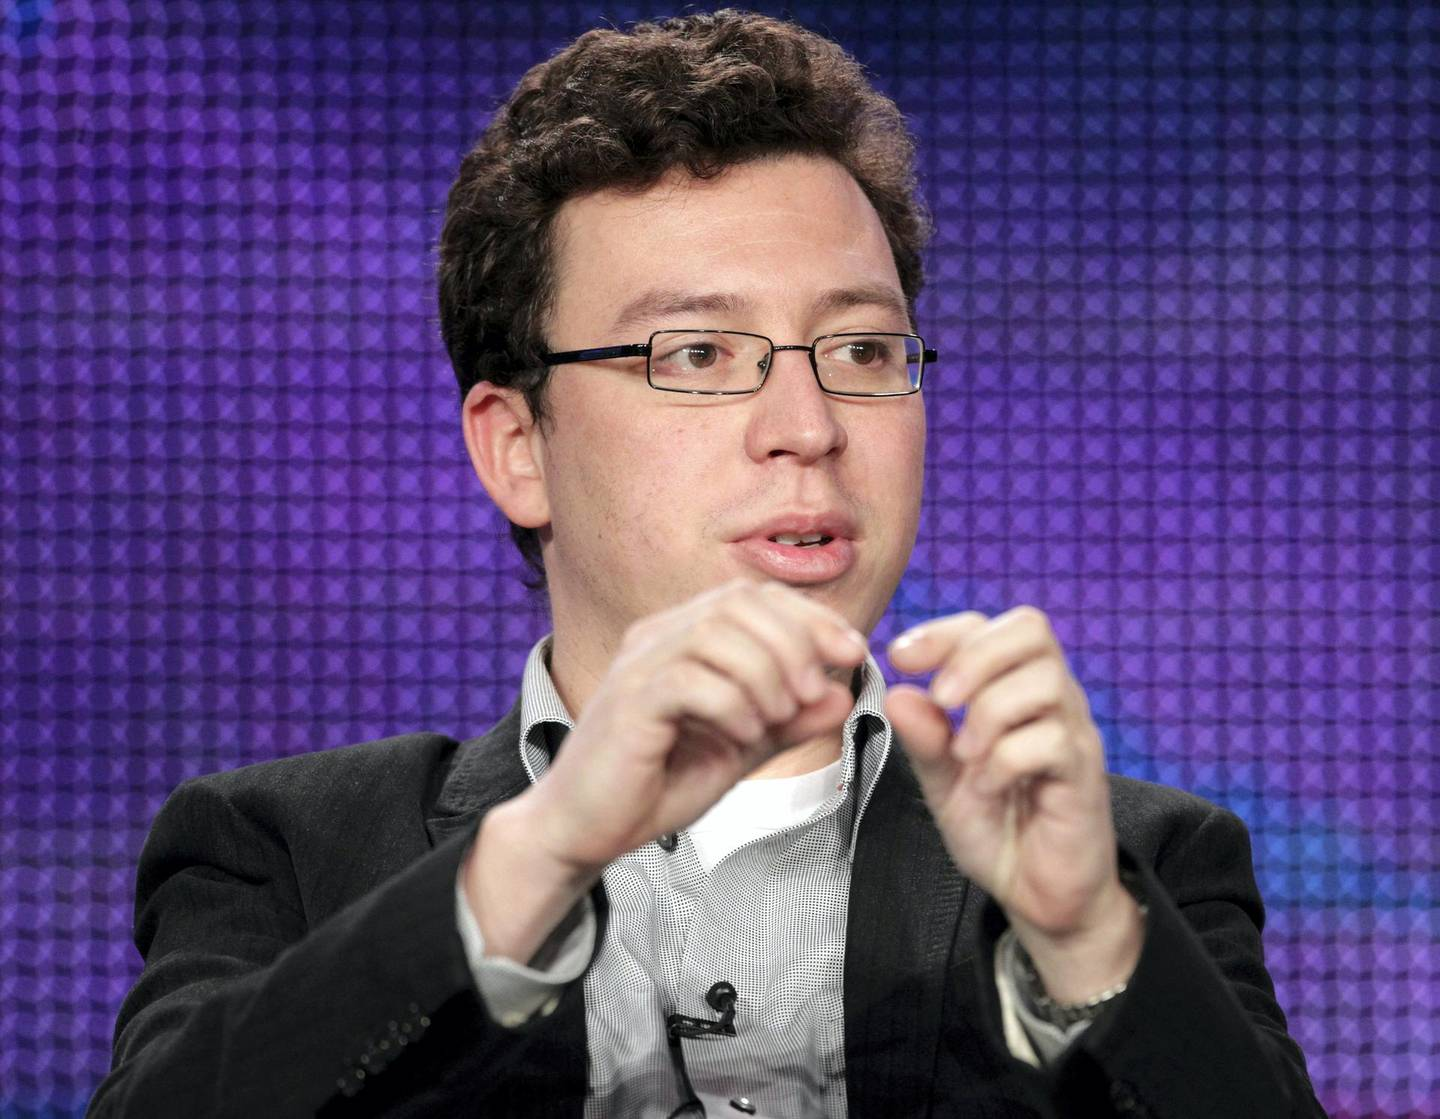 """(FILES) This file photo taken on January 8, 2011 shows Carnegie Mellon University professor and MacArthur """"Genius Grant"""" winner Luis von Ahn speaking during the 'NOVA: Smartest Machine on Earth - Can a Computer Win on Jeopardy!?' panel at the PBS portion of the 2011 Winter TCA press tour held at the Langham Hotel in Pasadena, California.    Luis von Ahn created a computer system to distinguish humans from robots. He made it collaborative and Google fell in love with the idea. Now, this Guatemalan genius, who became a millionaire in the United States before he turned 30 and has been nicknamed the """"Latin Mark Zuckerberg"""", wants learning to be """"addictive"""" with his free language education platform. / AFP PHOTO / GETTY IMAGES NORTH AMERICA / Frederick M. Brown"""